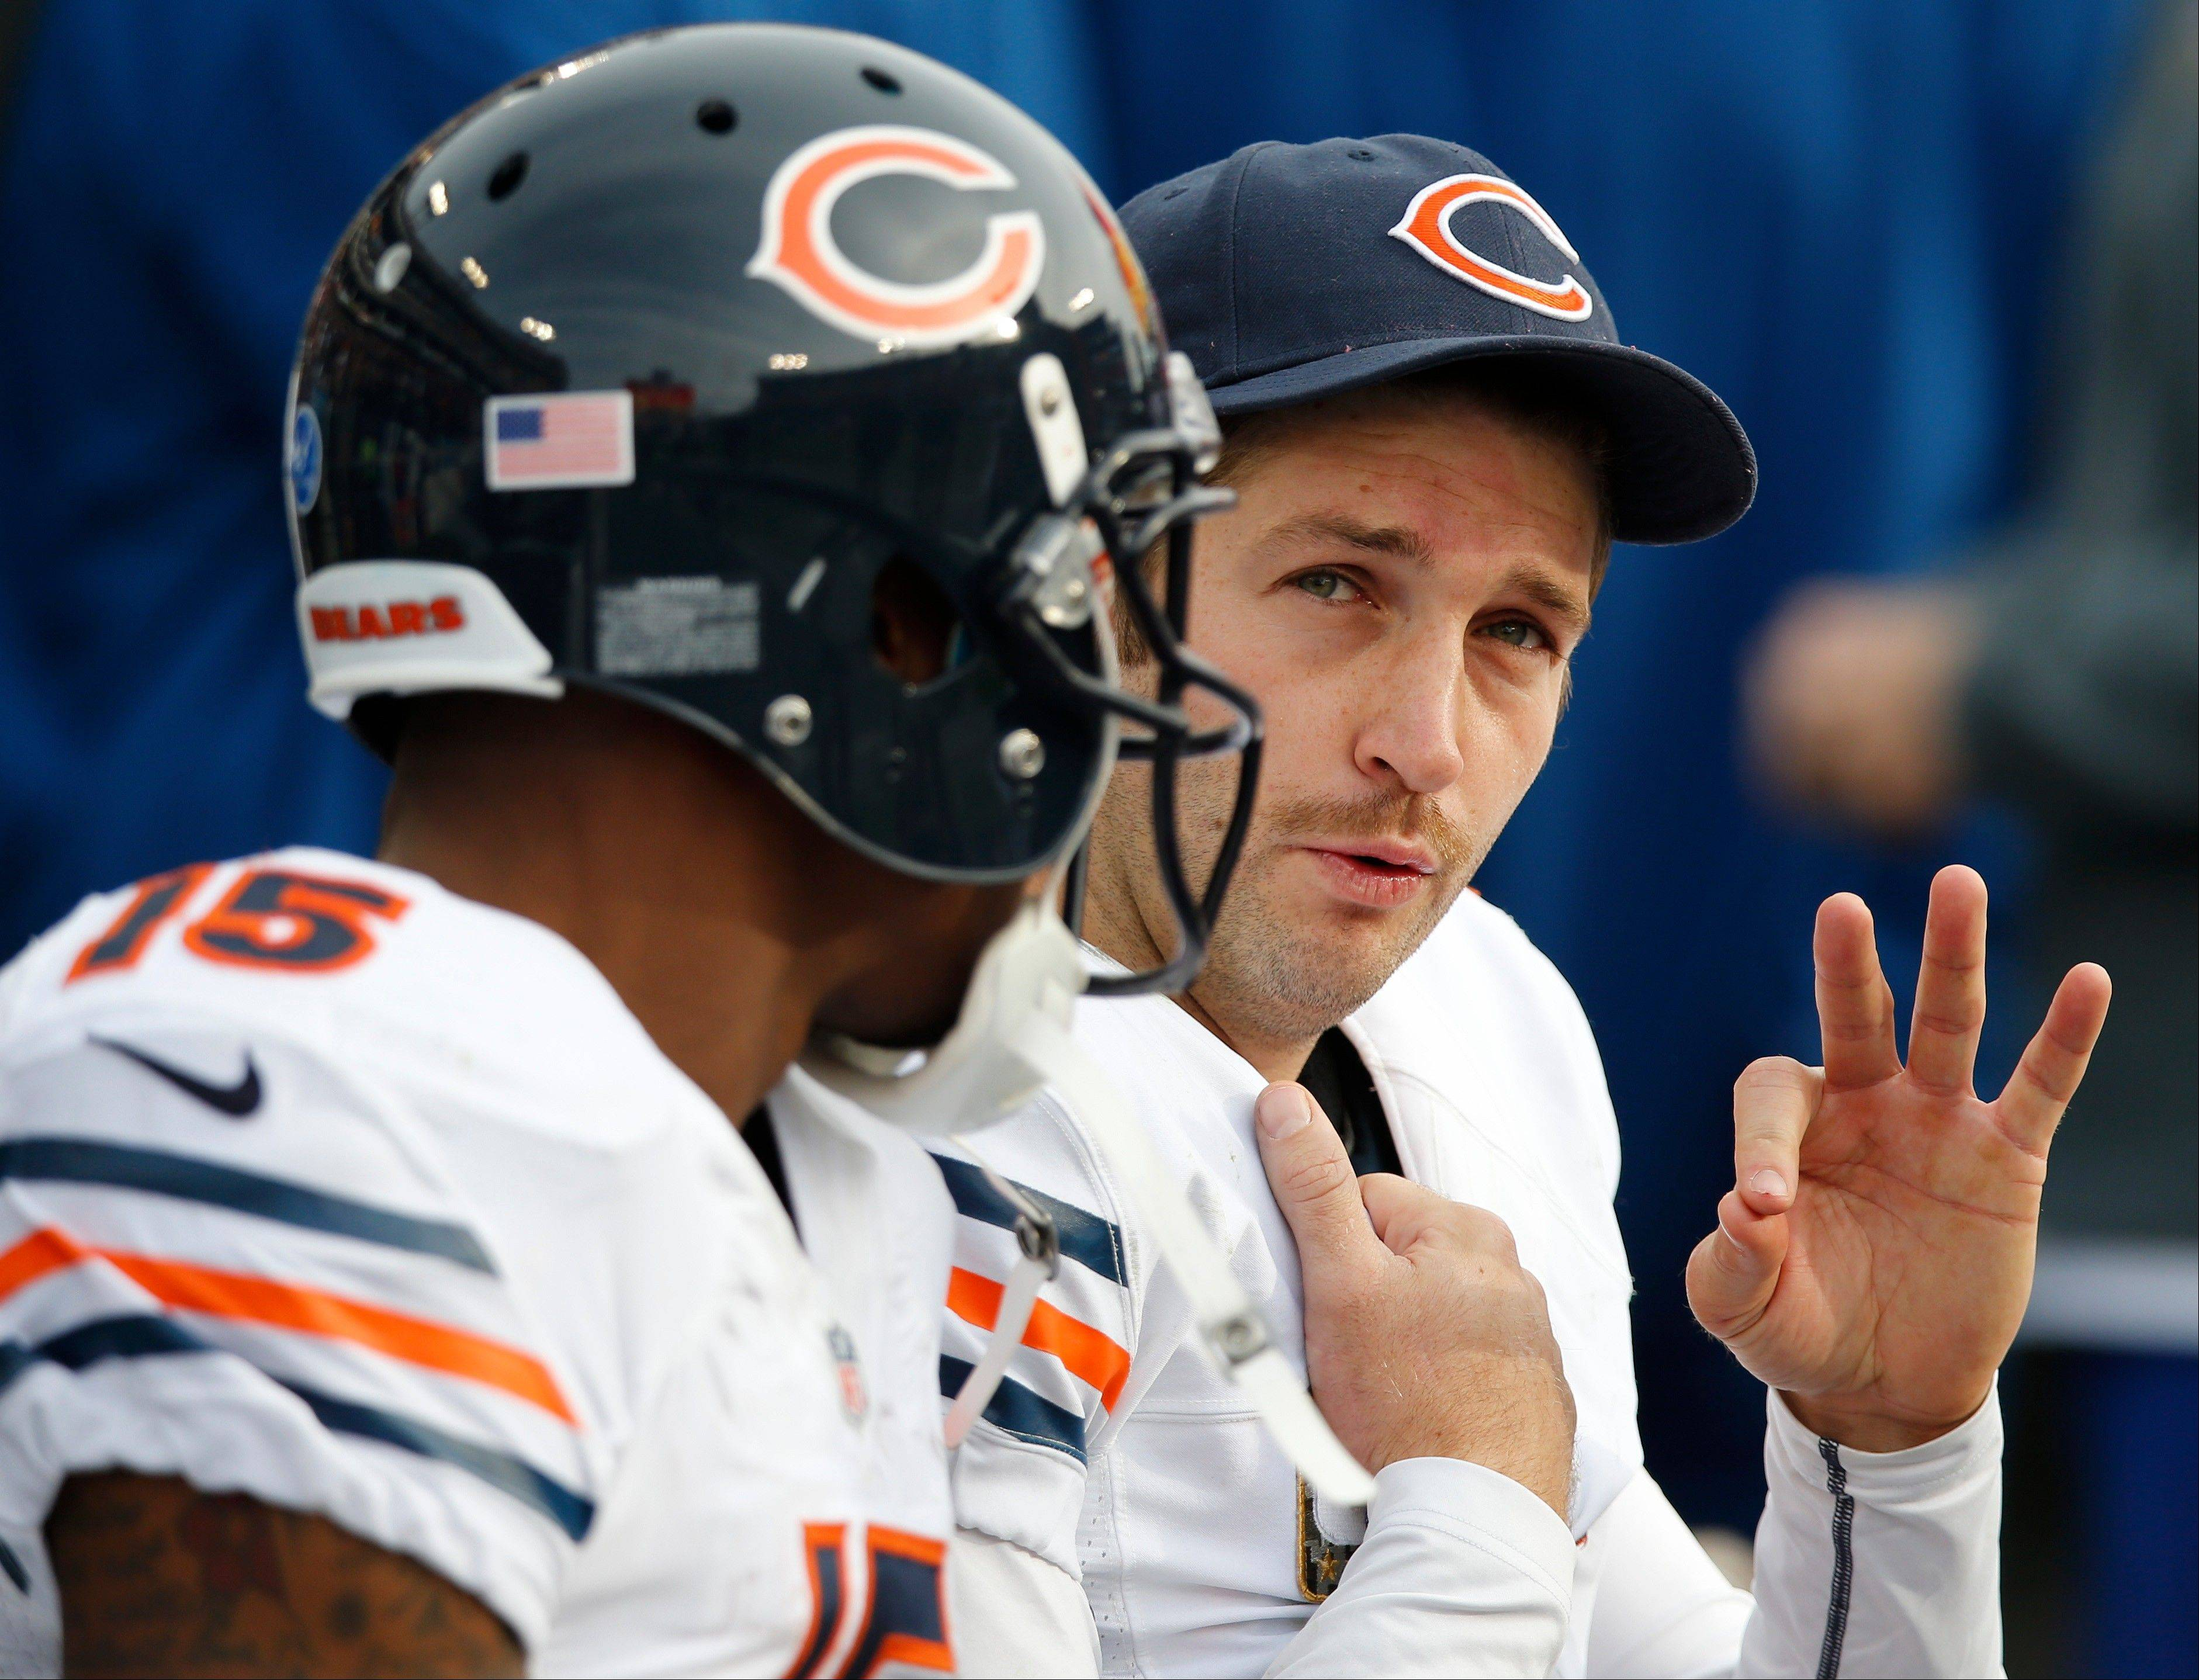 Bears quarterback Jay Cutler, right, and wide receiver Brandon Marshall take a break on the bench after Cutler threw a touchdown pass to Marshall against the Tennessee Titans in the fourth quarter last Sunday in Nashville. The Bears offense has flourished in the fourth, but struggled early in games.